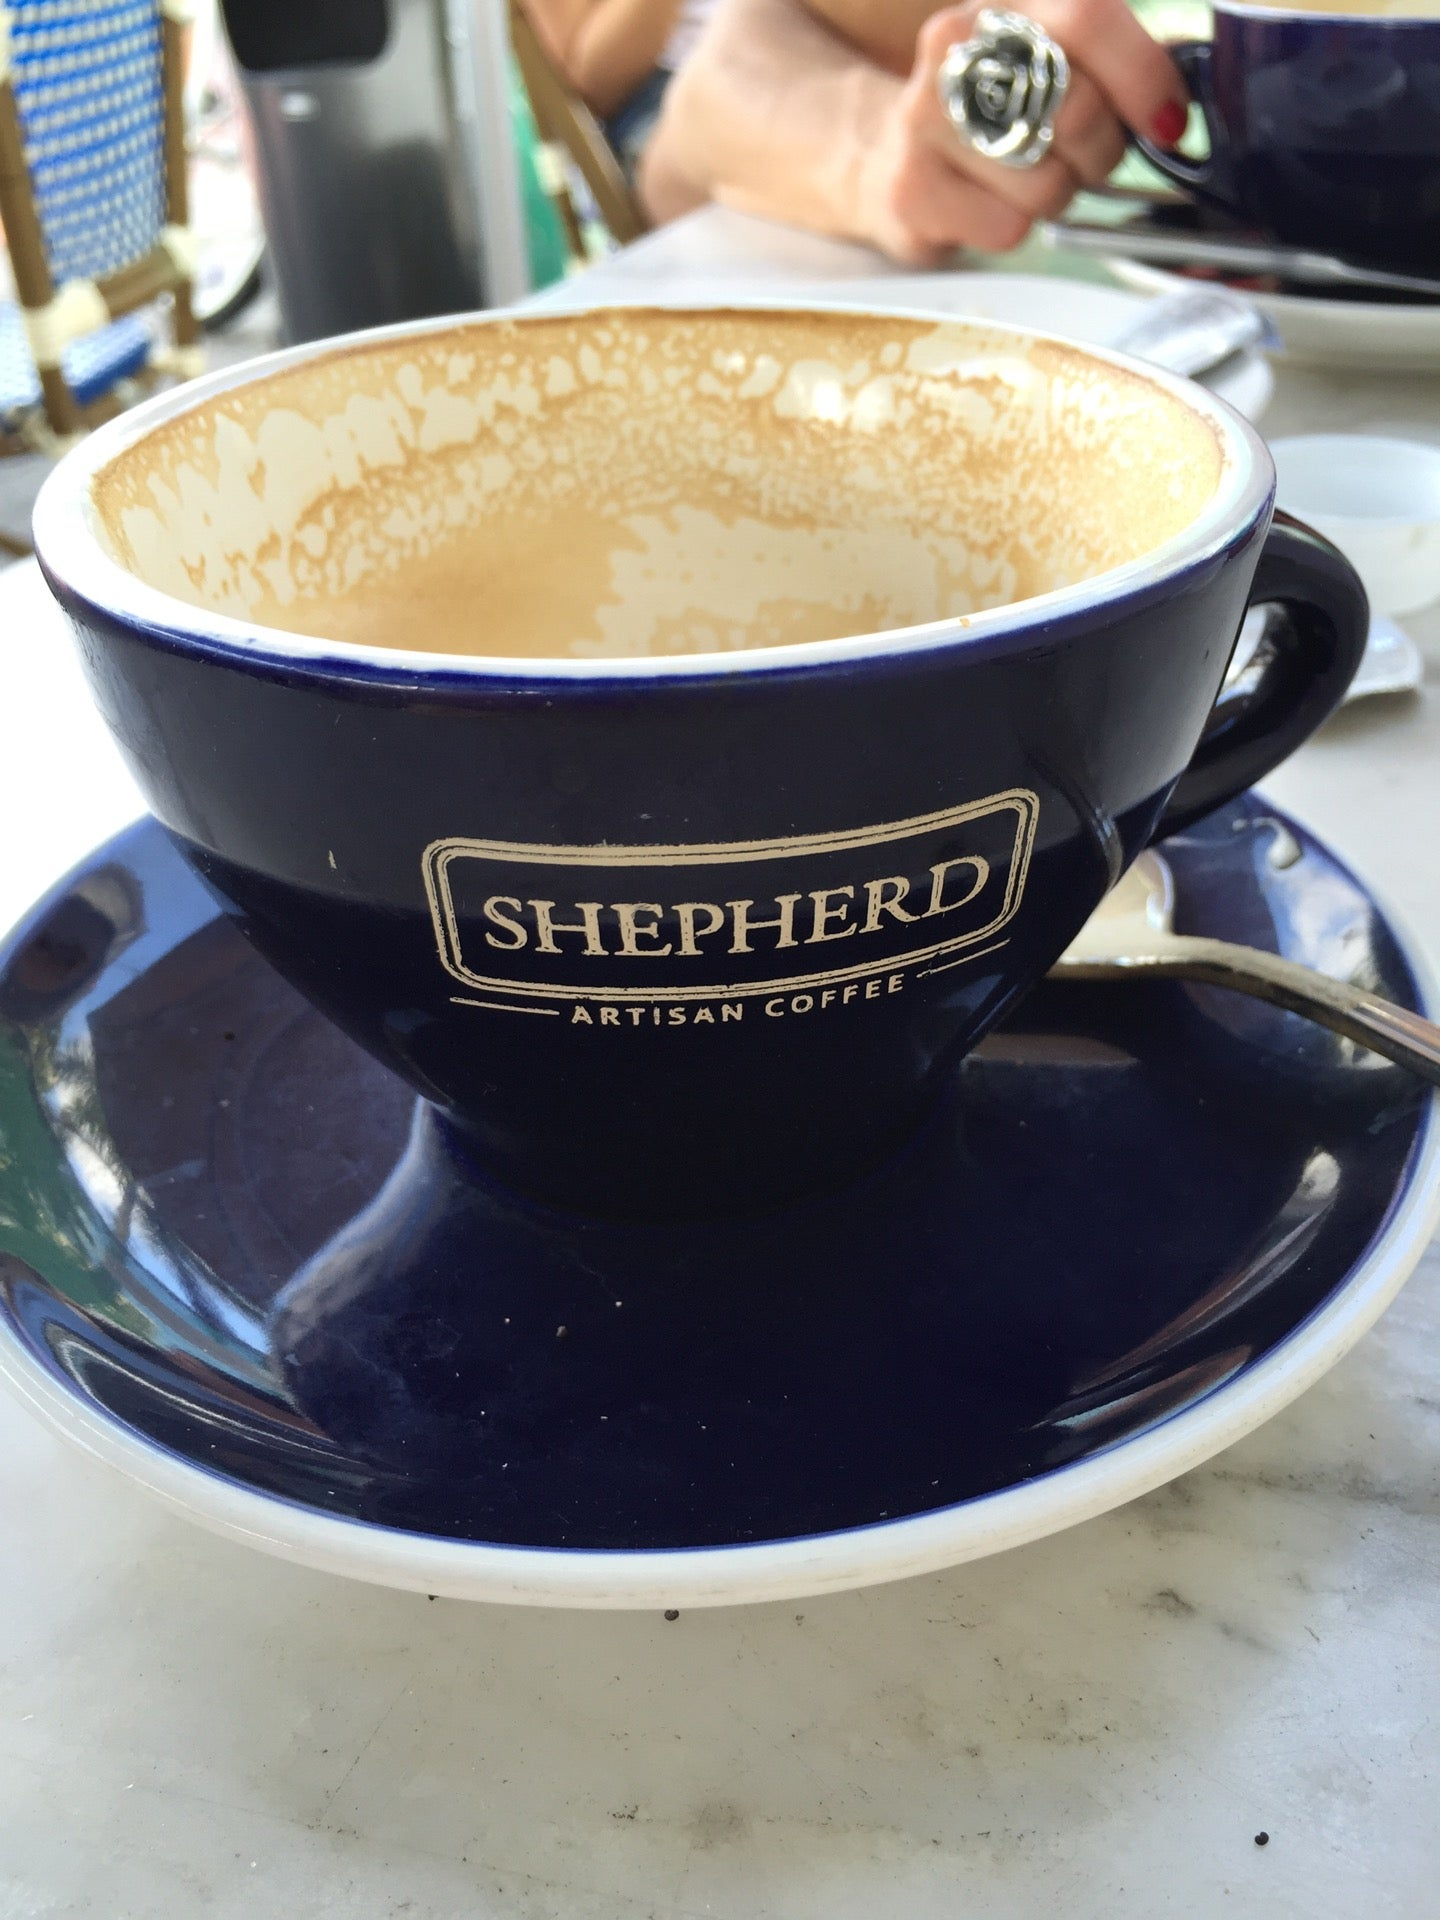 Shepherd Artisan Coffee,